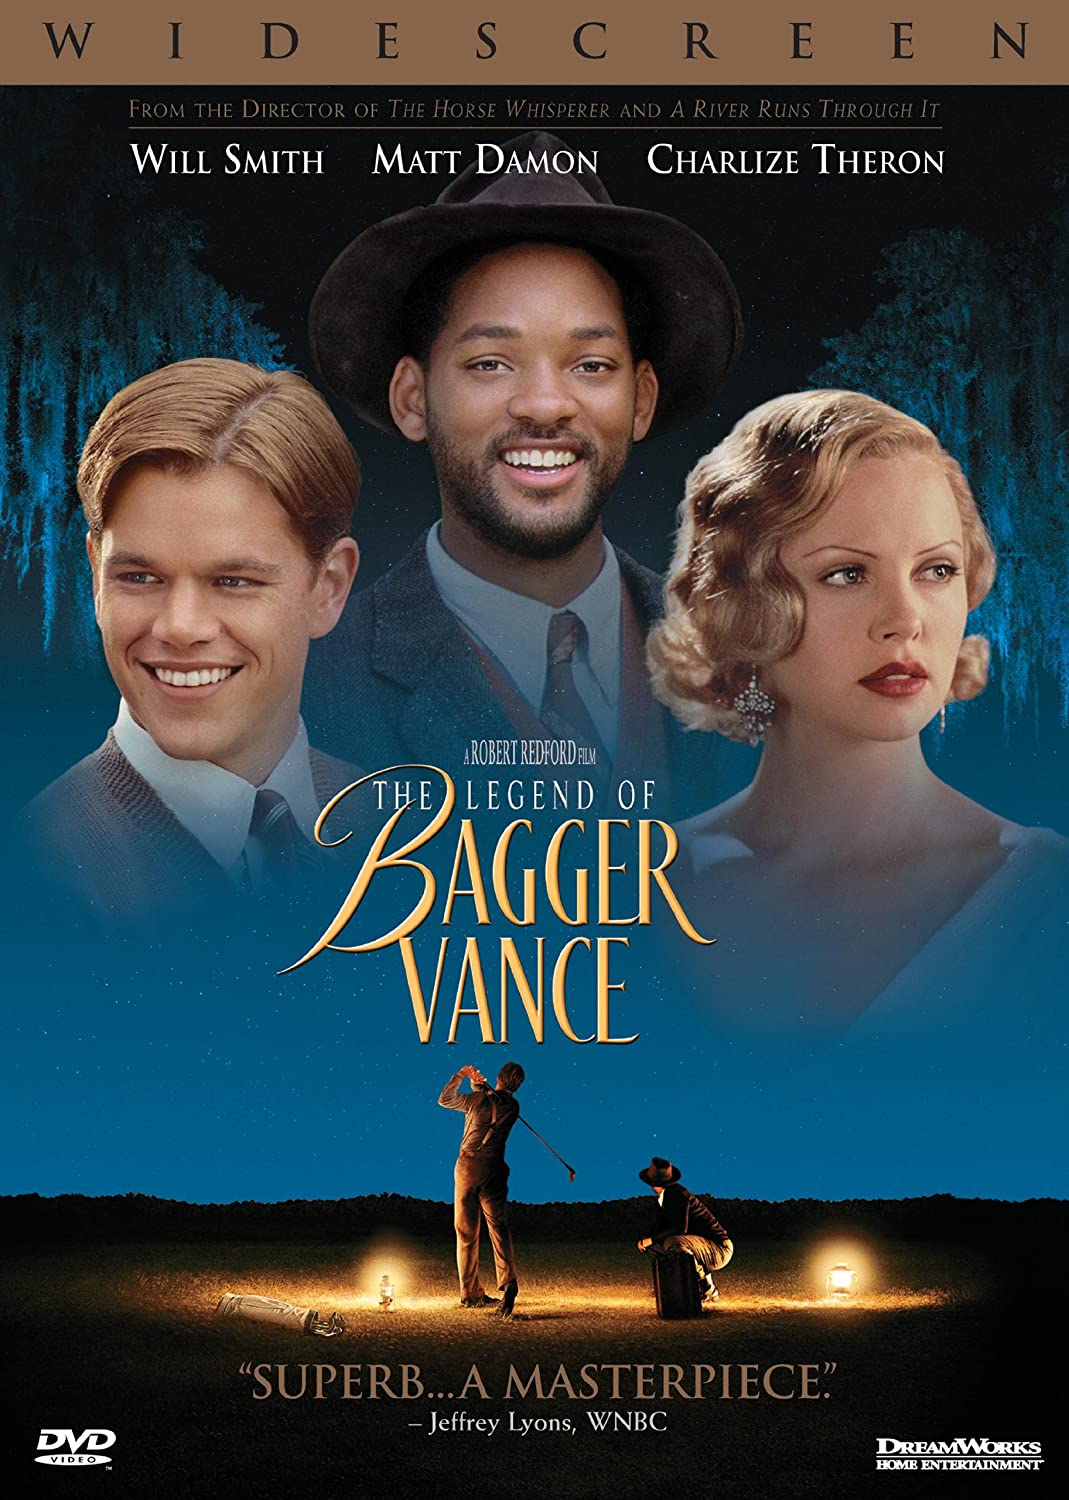 The legend of vance bagger